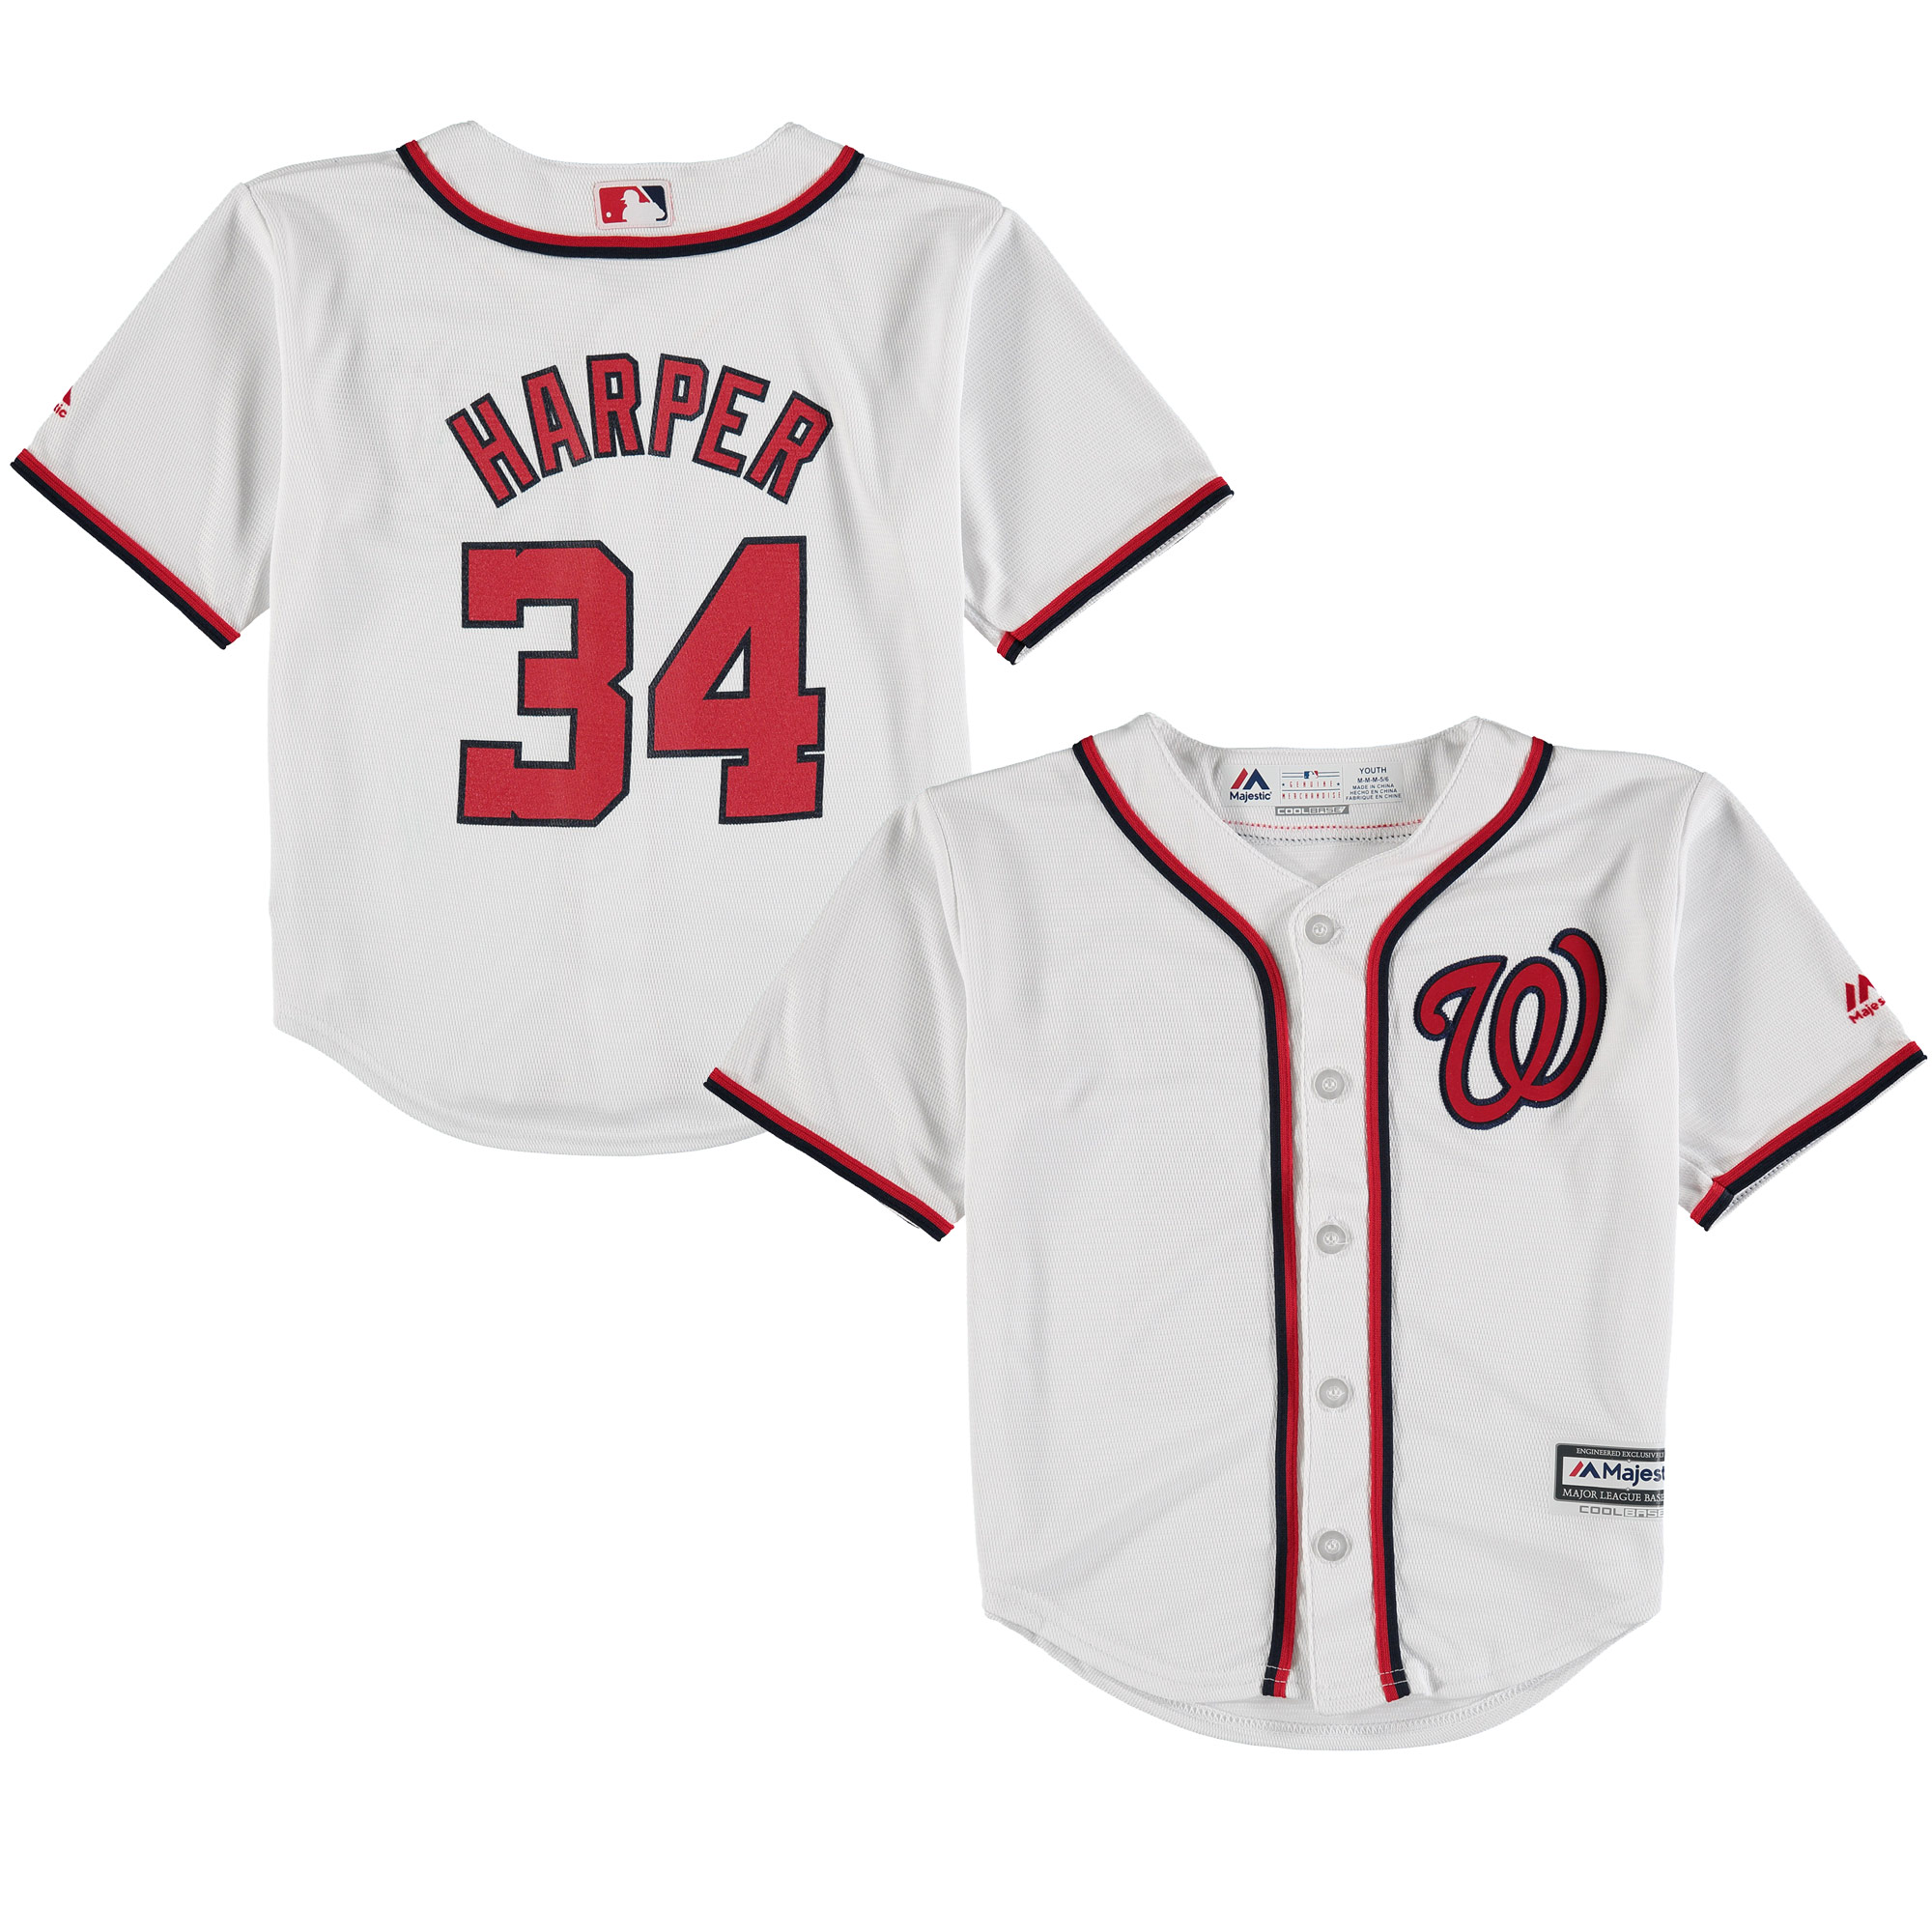 Bryce Harper Washington Nationals Majestic Preschool & Toddler Home Official Cool Base Player Jersey - White